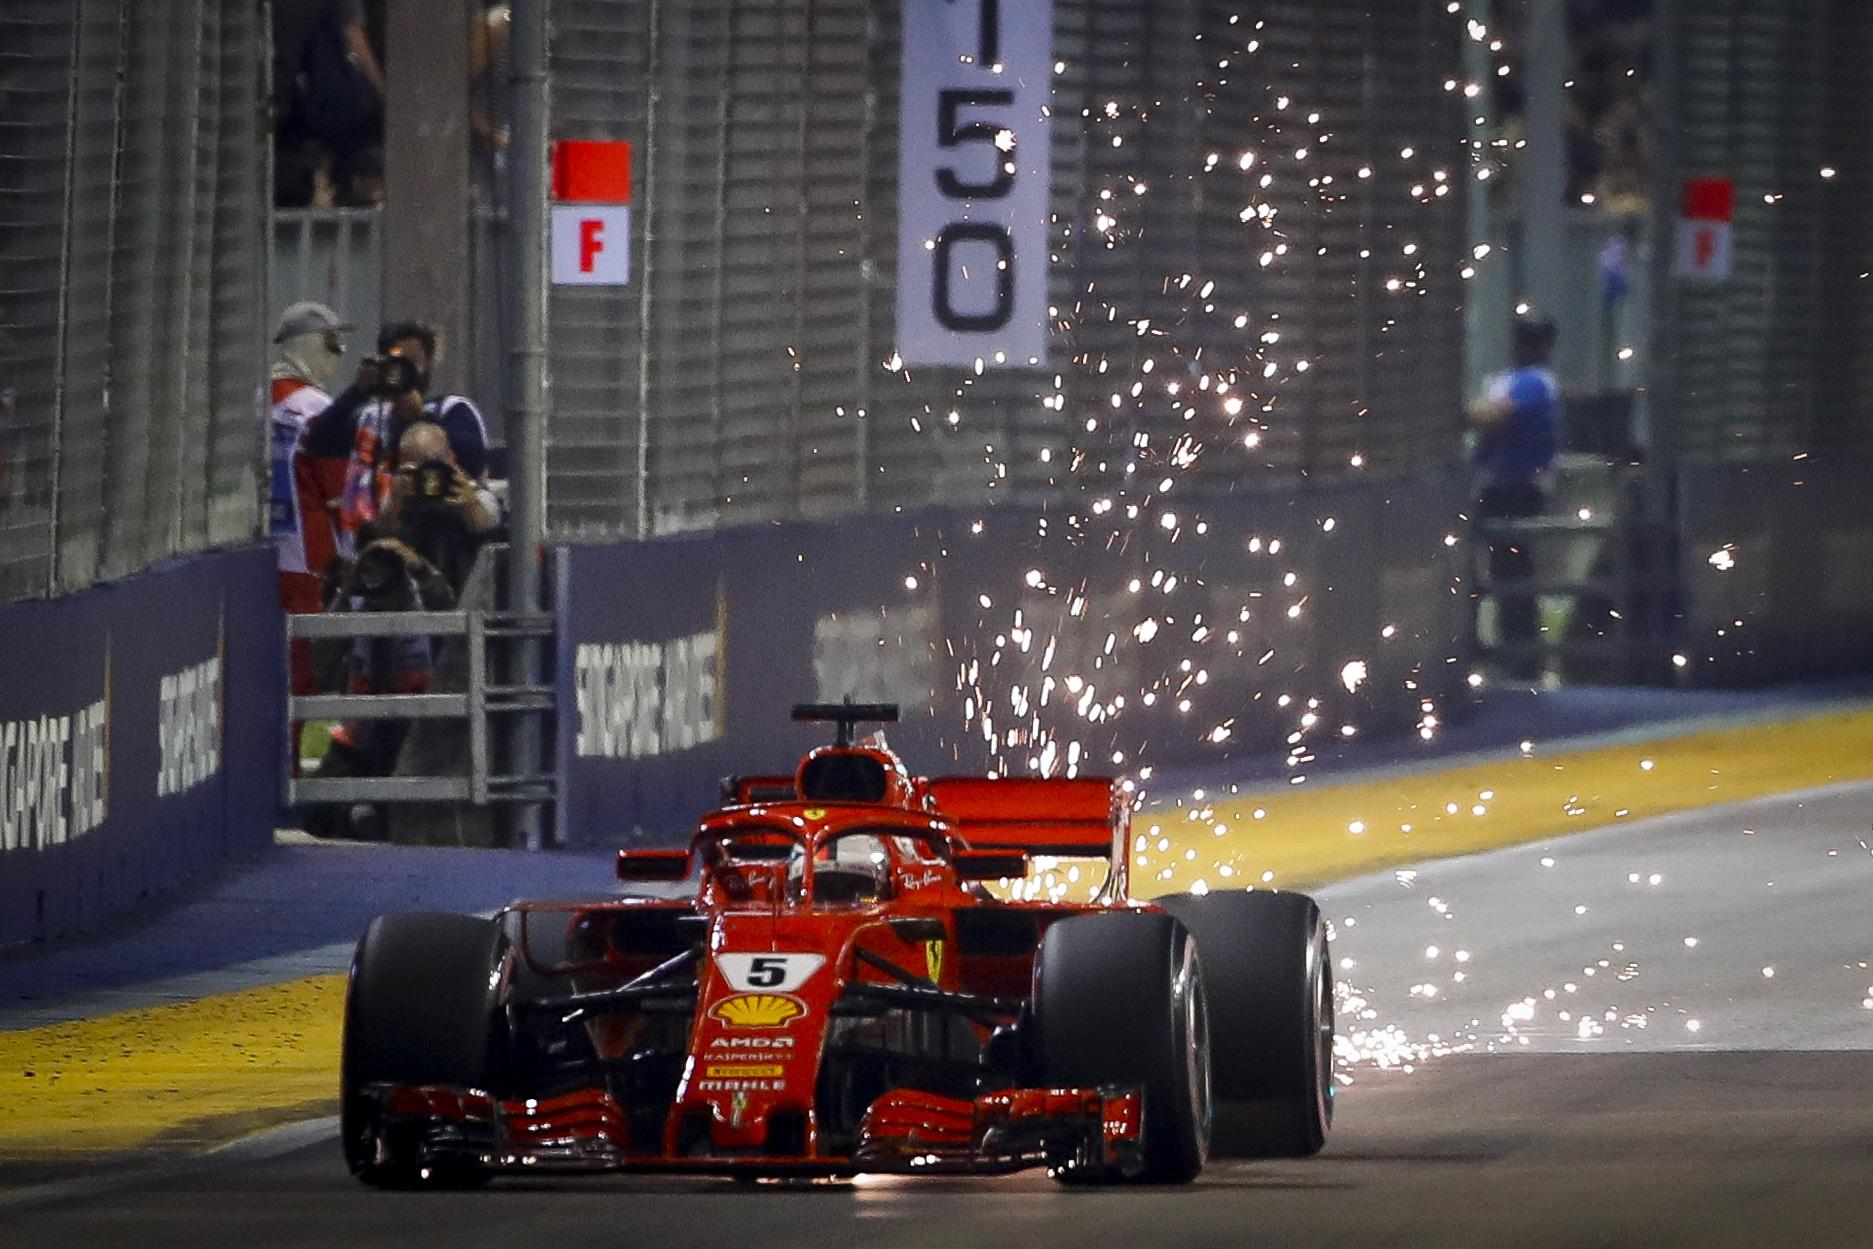 Sebastian Vettel crashed into a wall in practice this week and will start from third on grid on Sunday's race